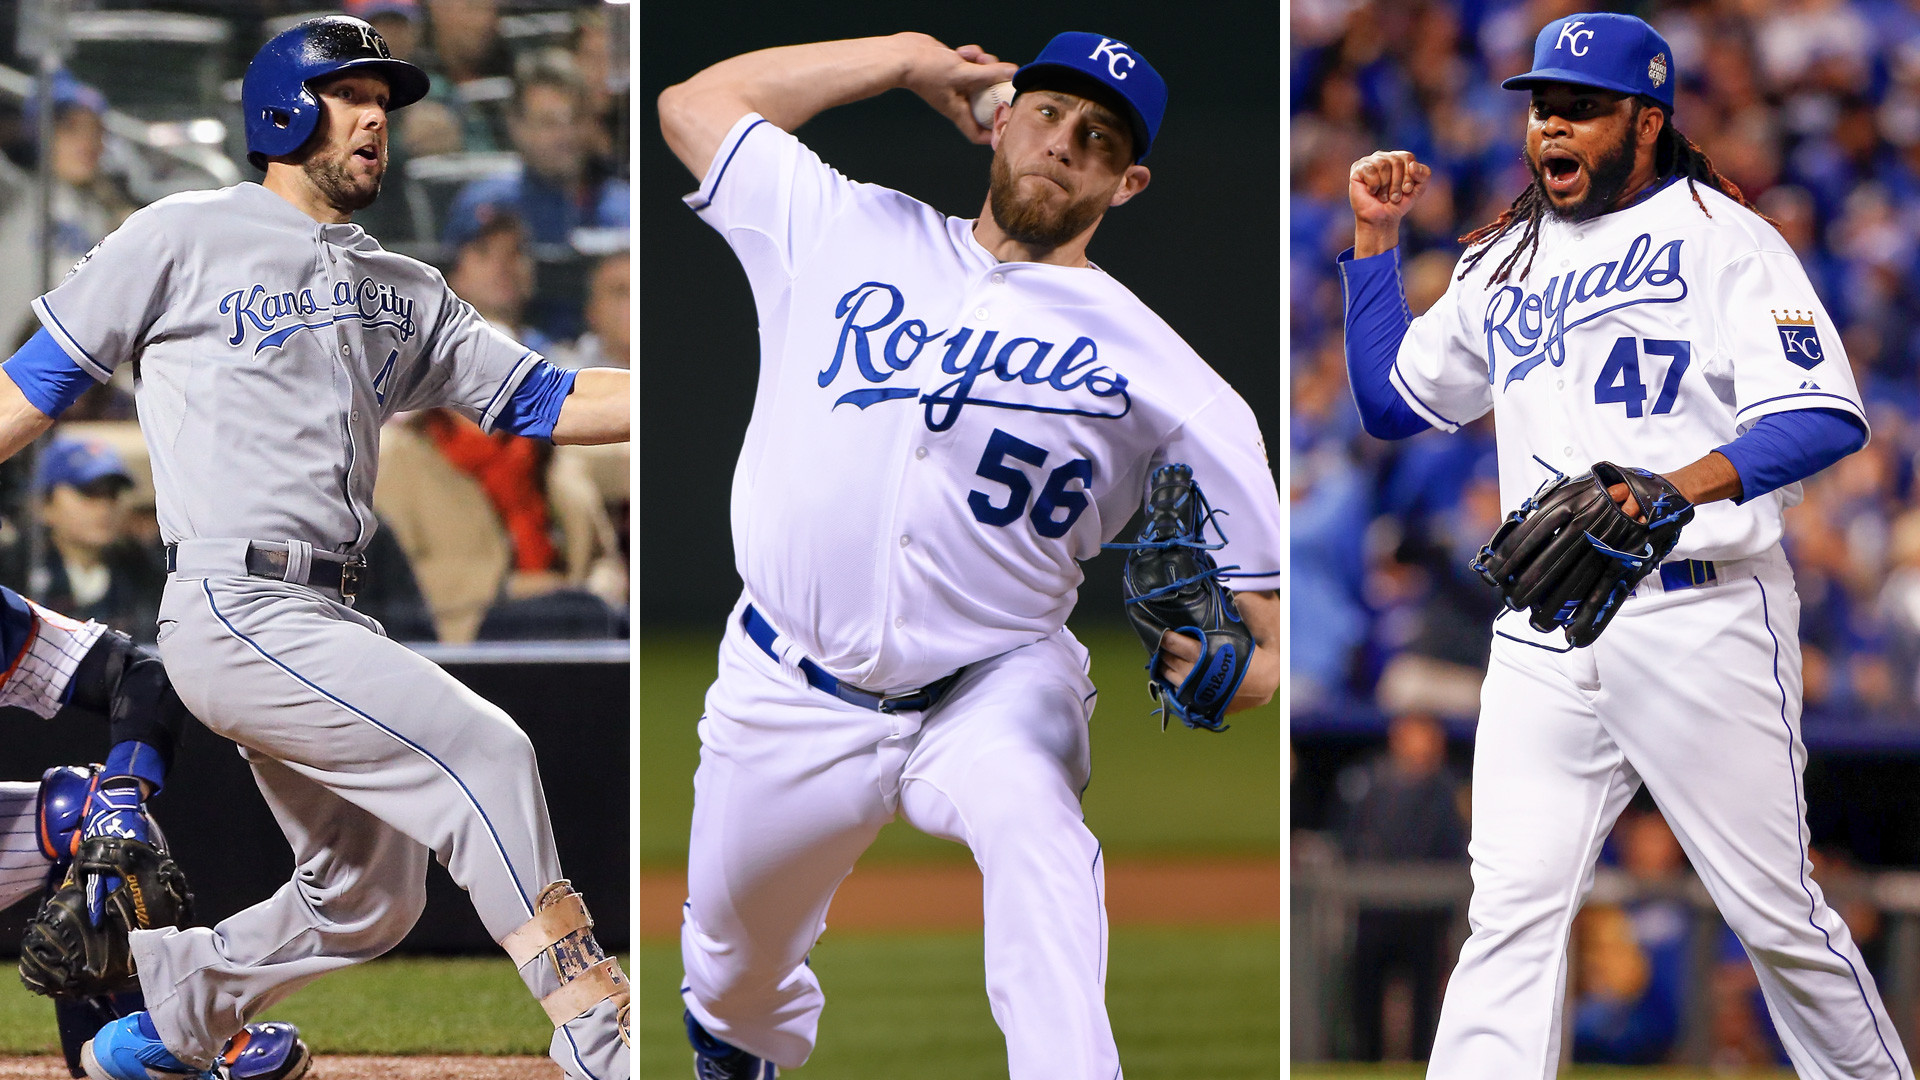 1920x1080 World Series 2015: What comes next for champion Royals? | MLB | Sporting  News